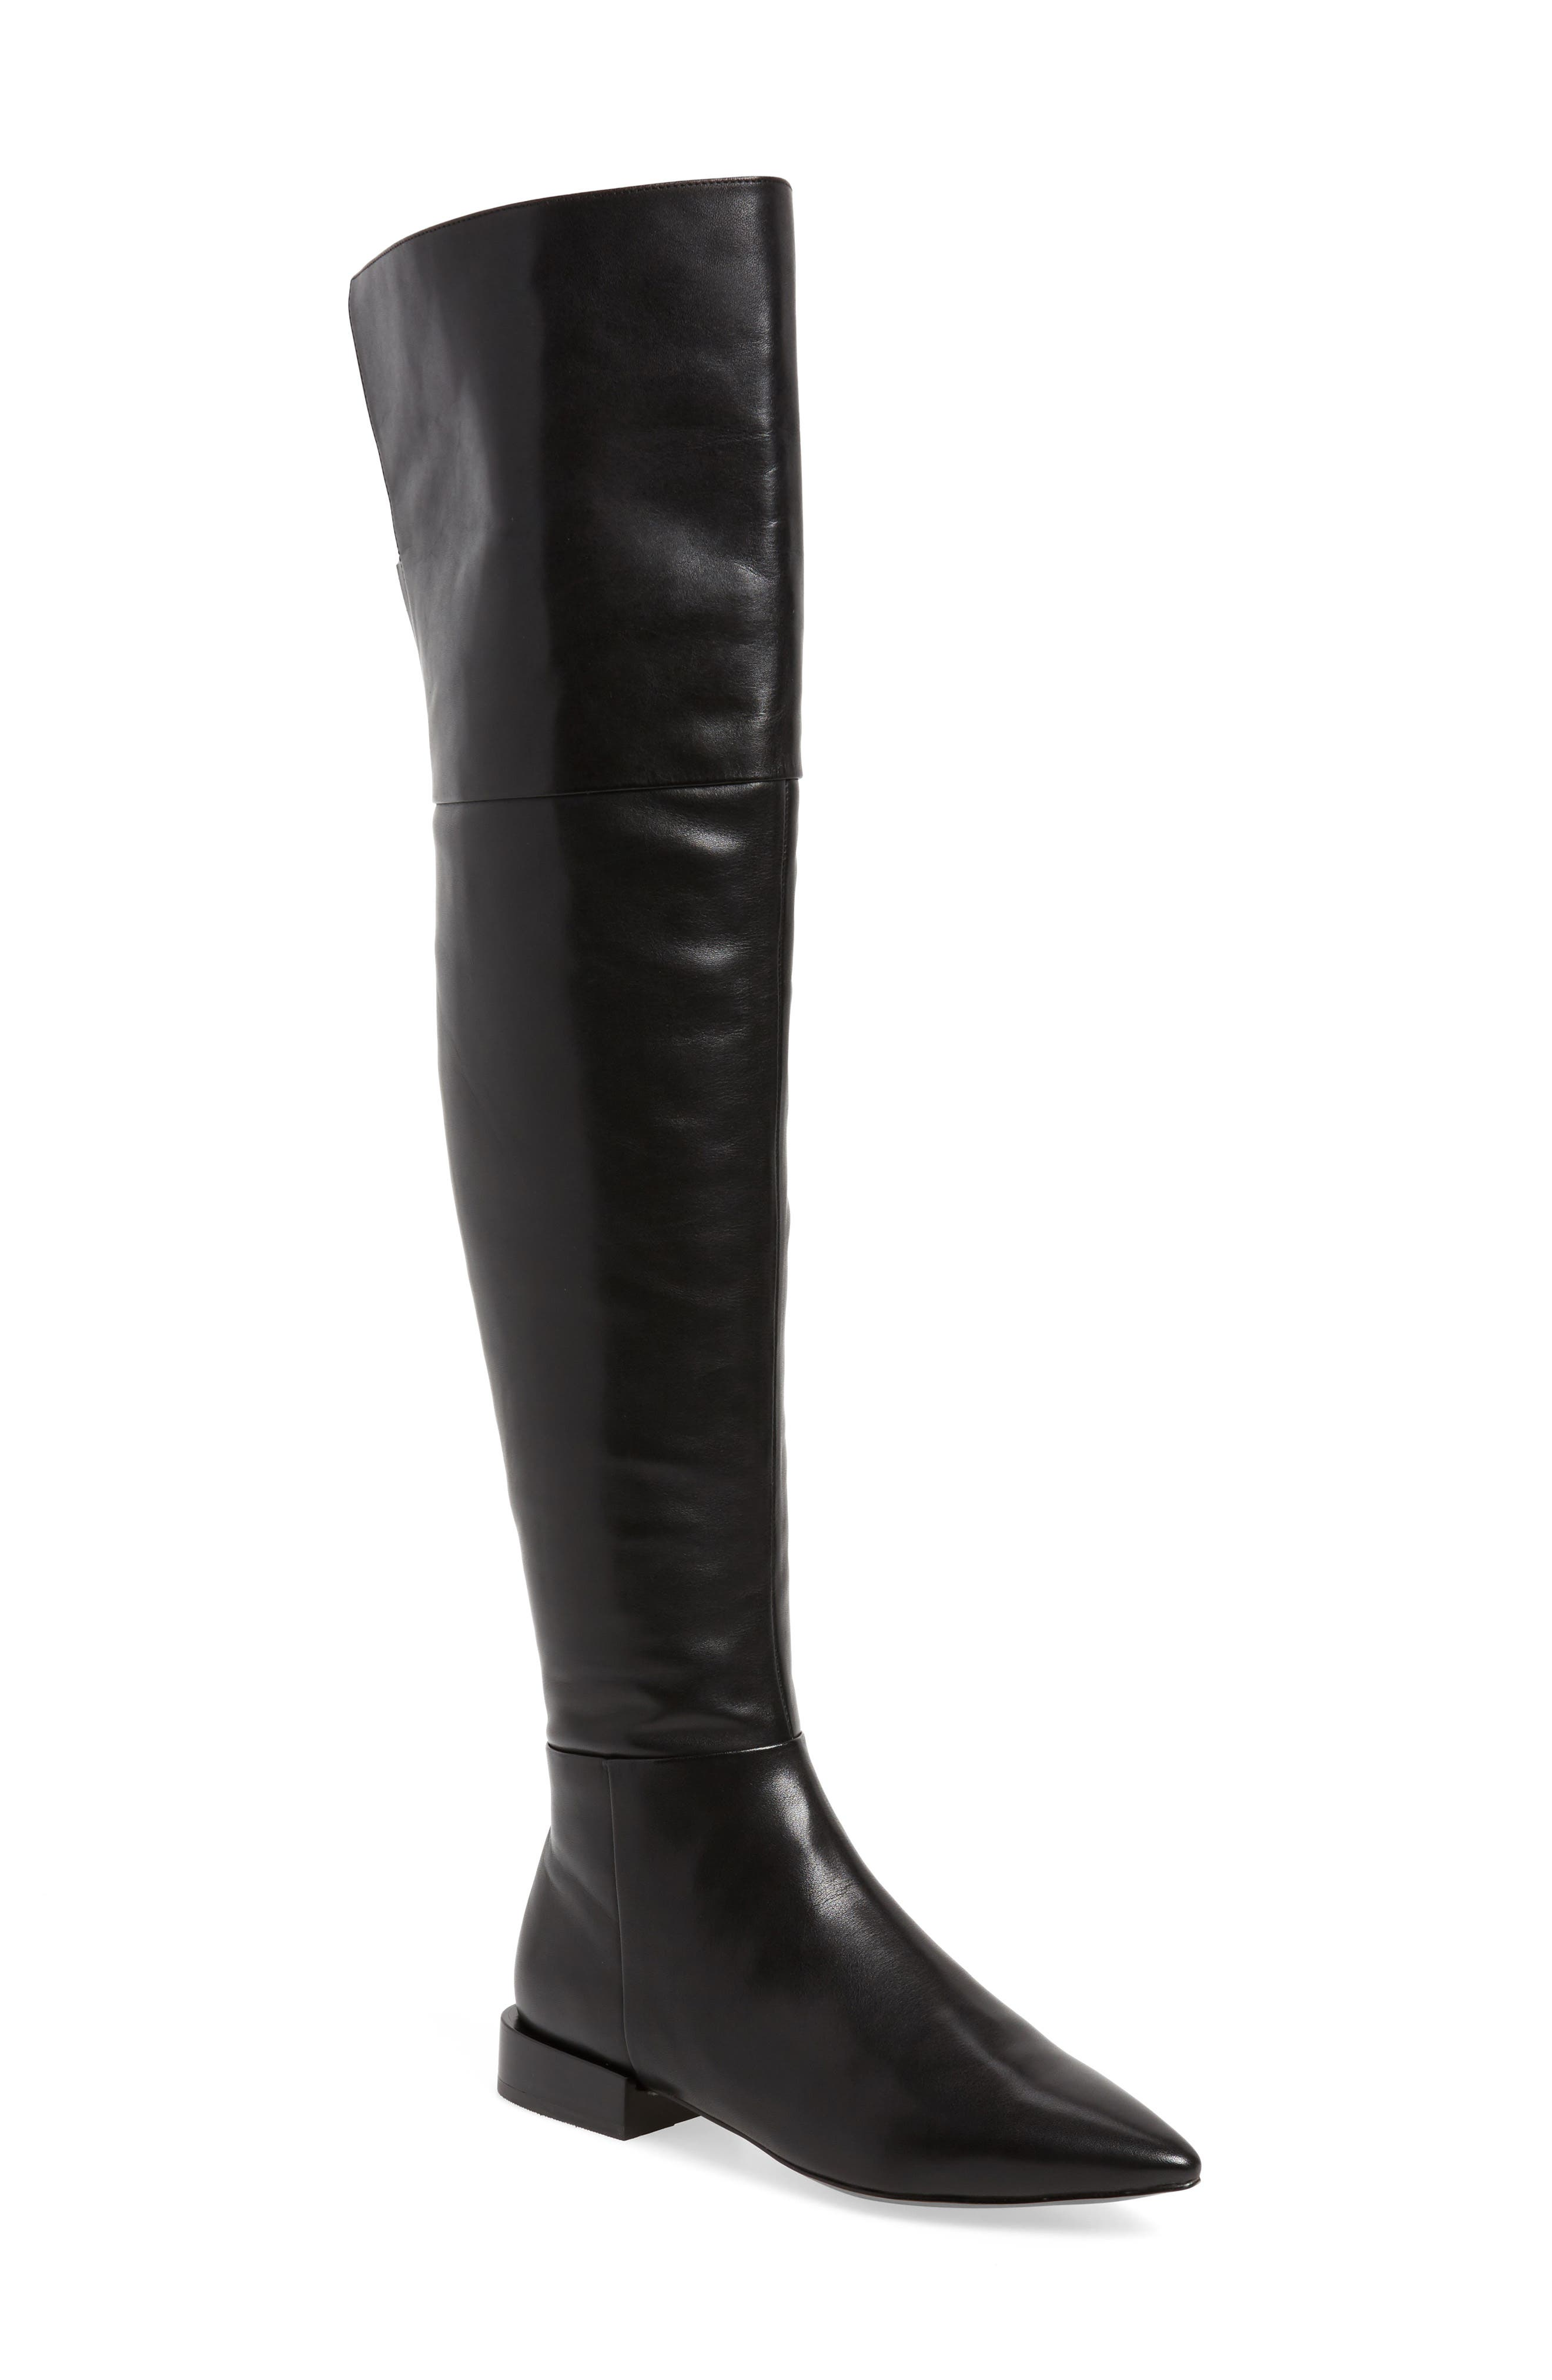 Kiki Over the Knee Boot,                             Main thumbnail 1, color,                             Black Leather